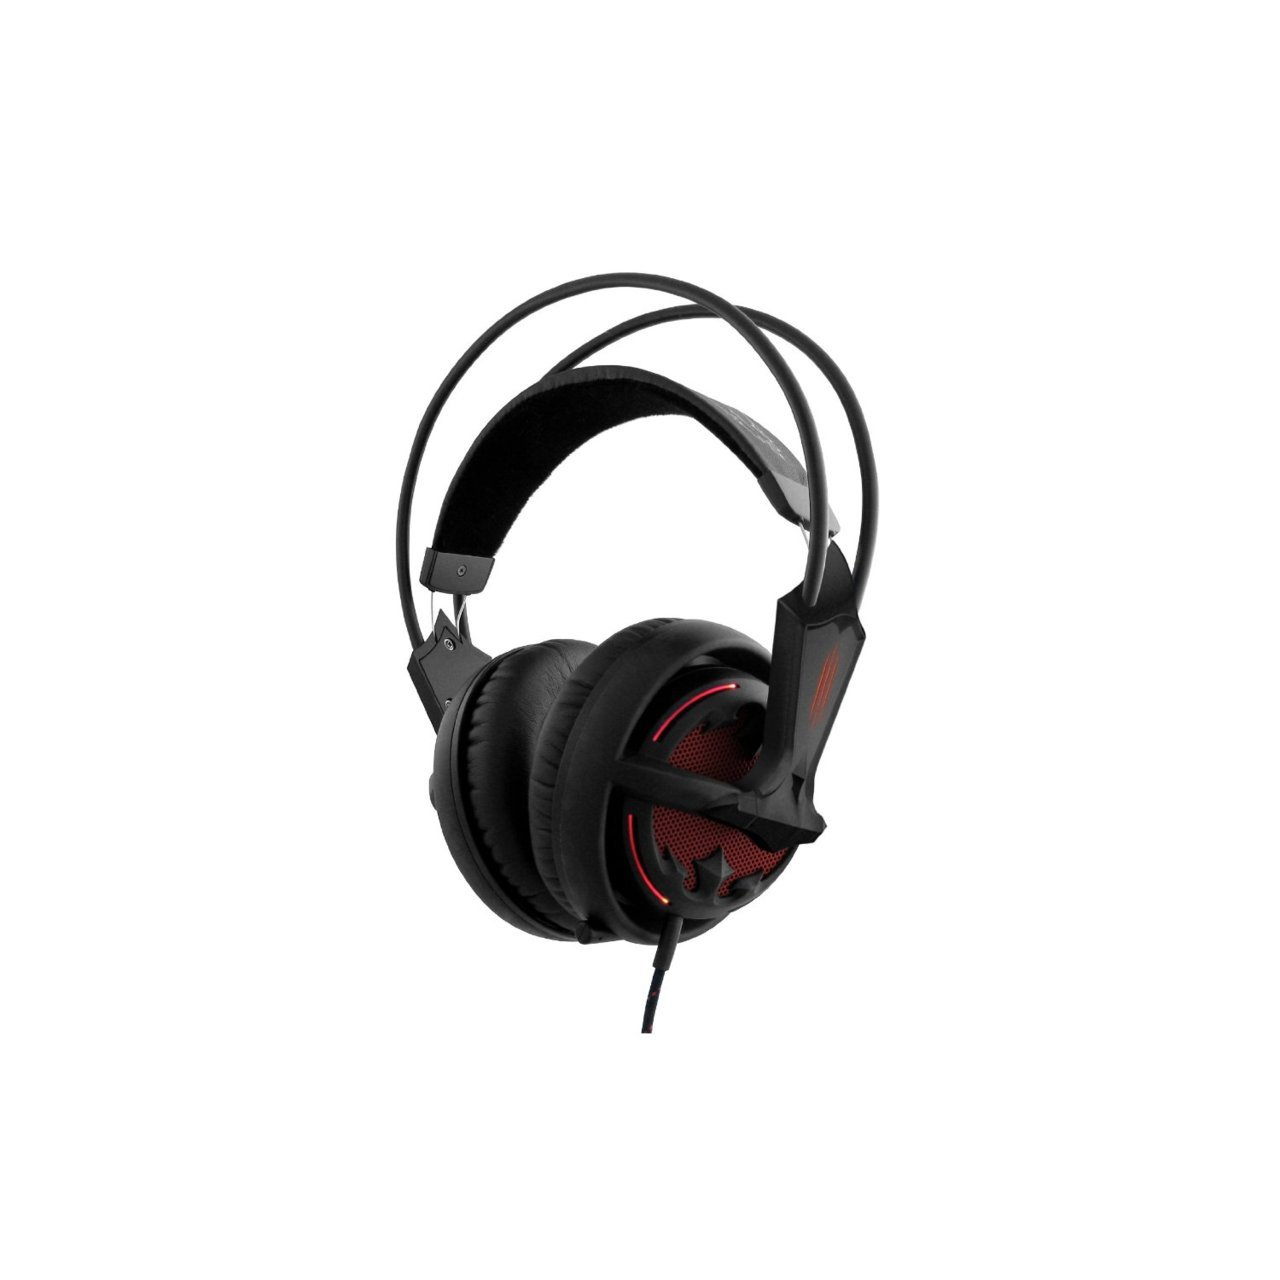 Diablo III Gaming Headset at $119.99 Featuring 50mm driver units that reproduce crystal clear sounds in high, low, and mid-range tones, the SteelSeries Diablo III Headset is at the core of creating an incredible Diablo III audio experience. Whether it's the ominously-toned soundtrack, the approaching hiss of a Witch Doctor's firebomb, or the bloody rage of a Barbarian whirlwind, users will clearly hear the gut-wrenching hurls and exploding innards of your enemies.